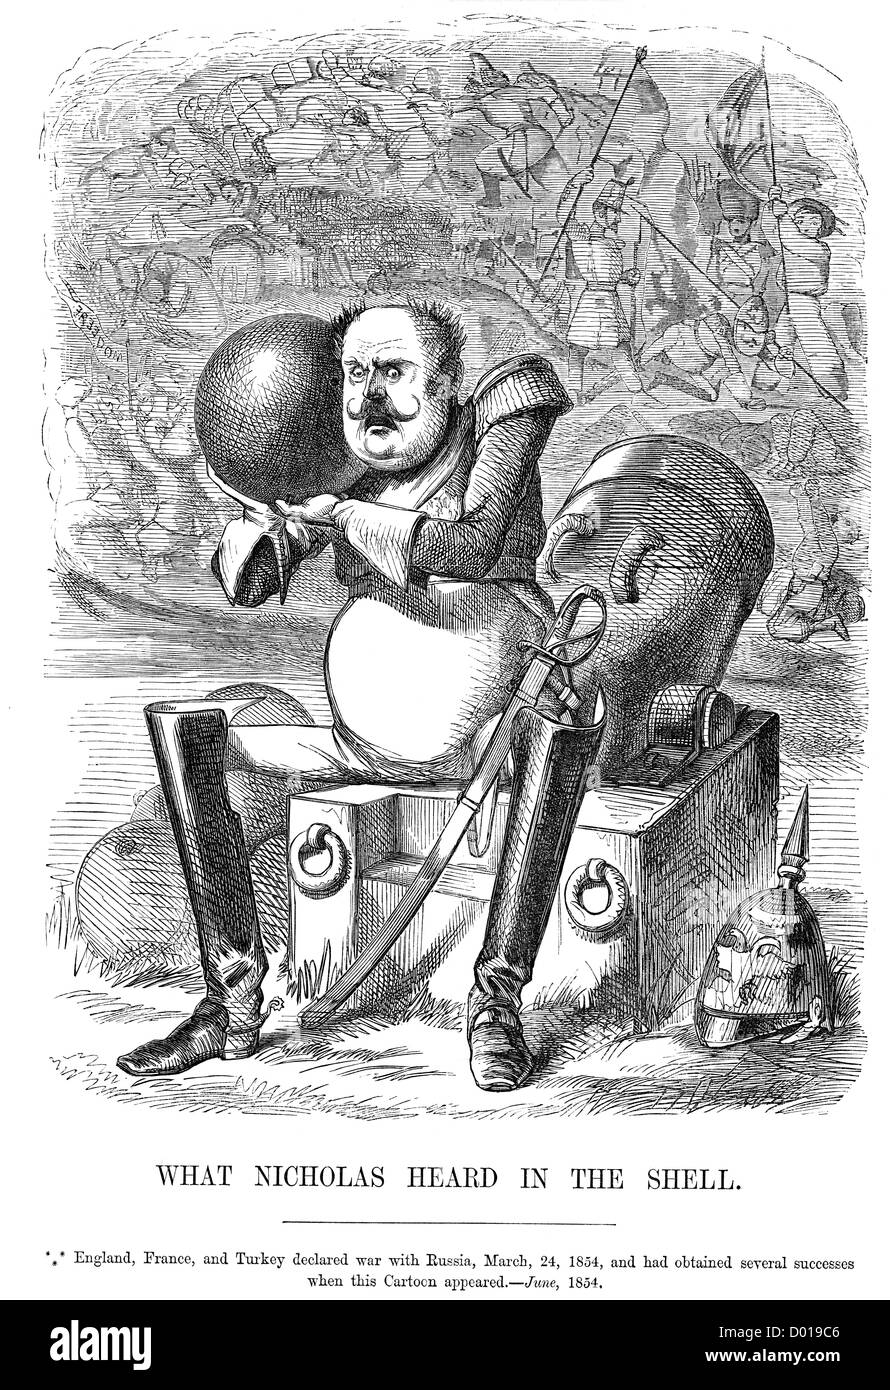 Caricature of Tsar Nicholas I of Russia at the start of the Crimean War. - Stock Image